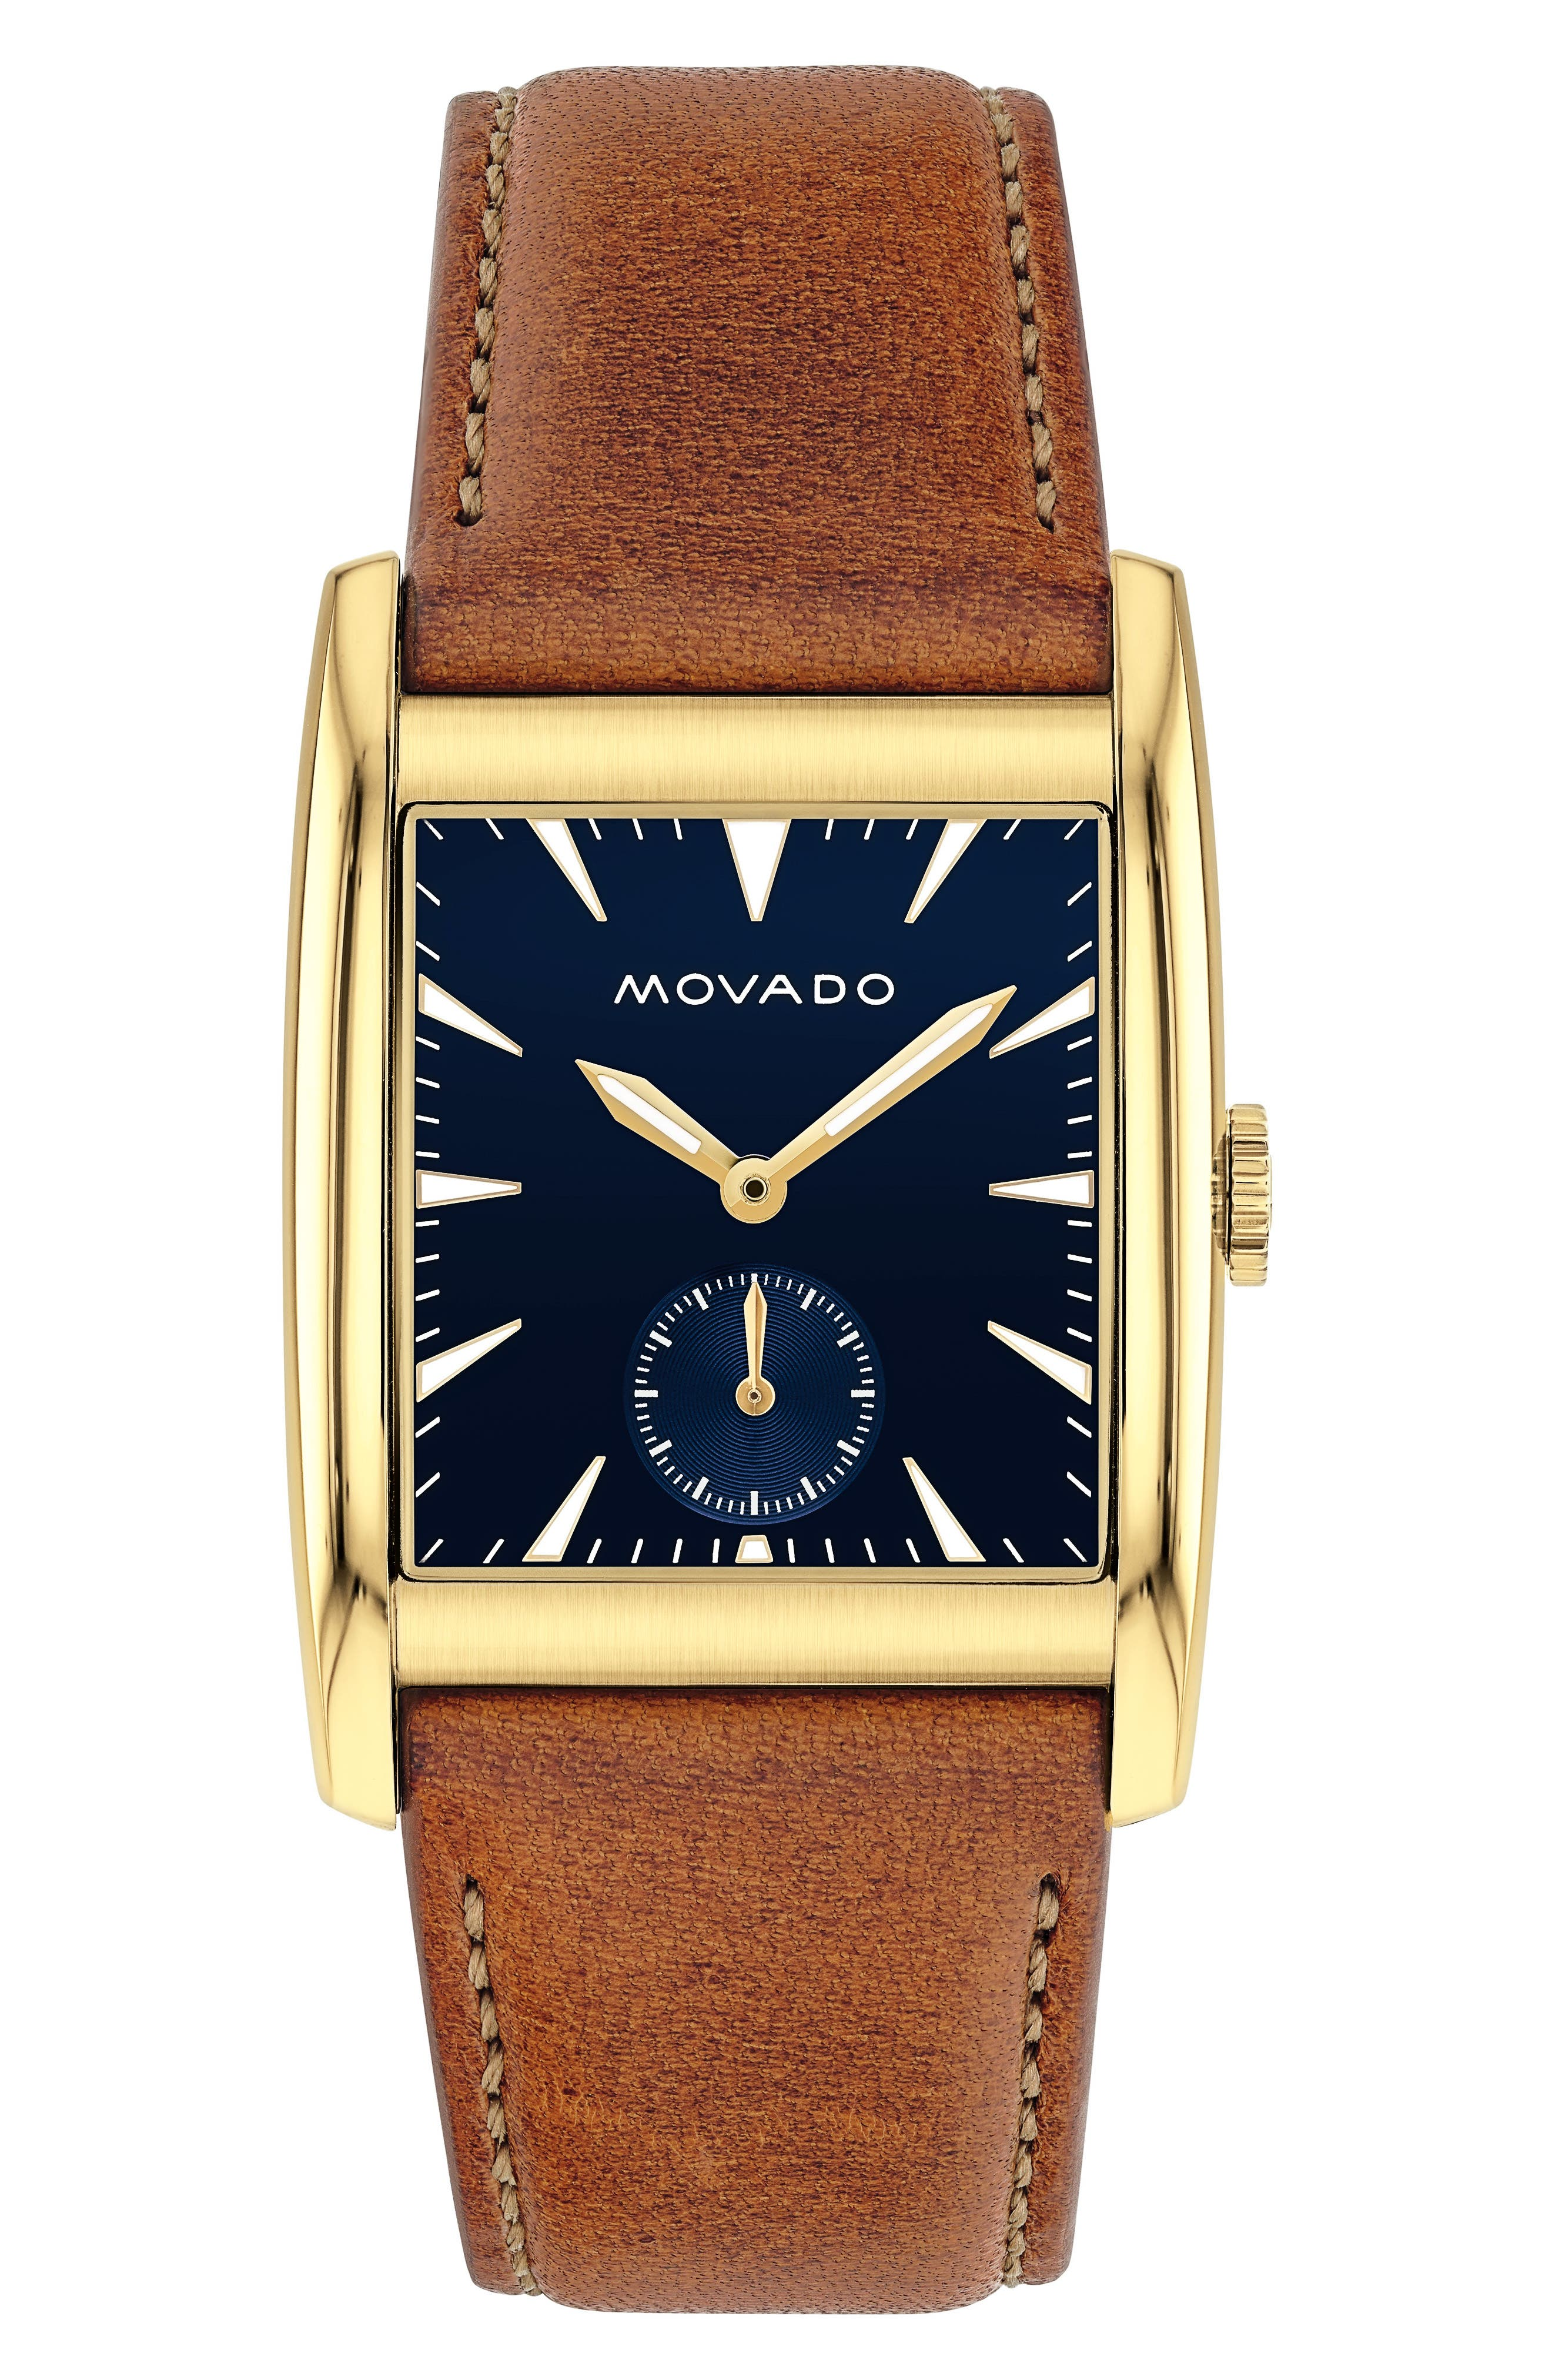 Main Image - Movado Heritage Leather Strap Watch, 41mm